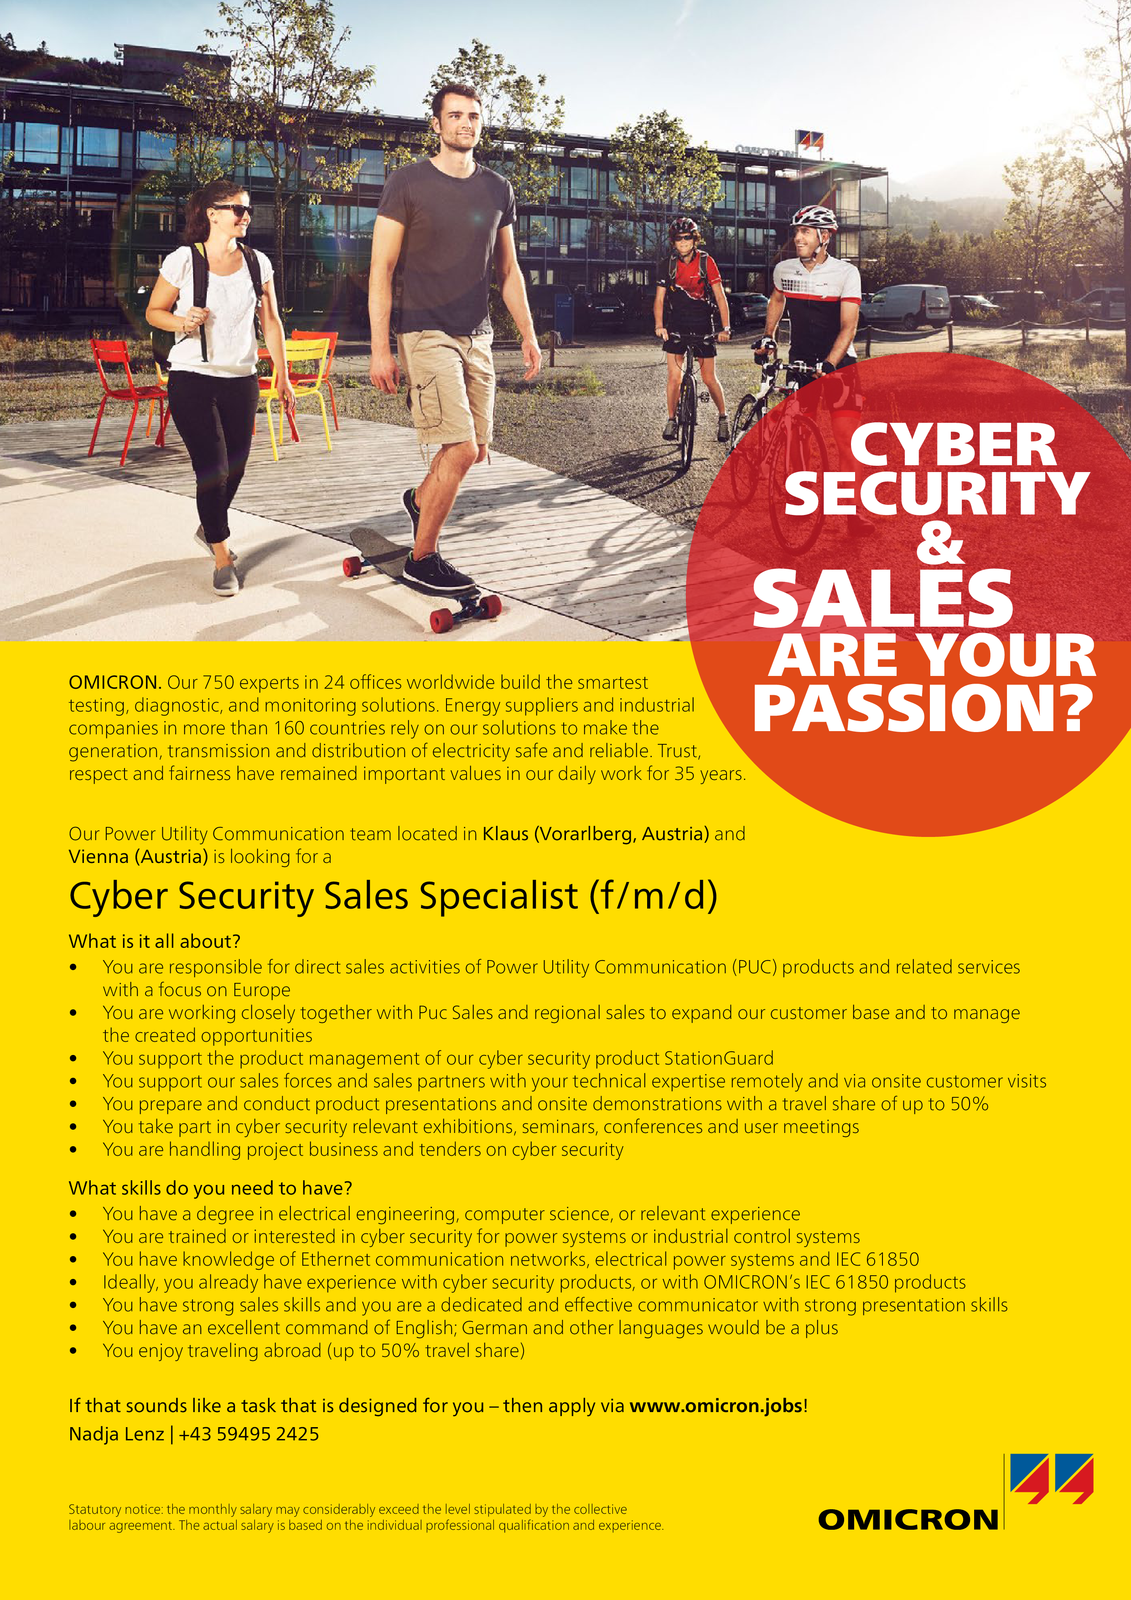 Cyber Security Sales Specialist (f/m/d)